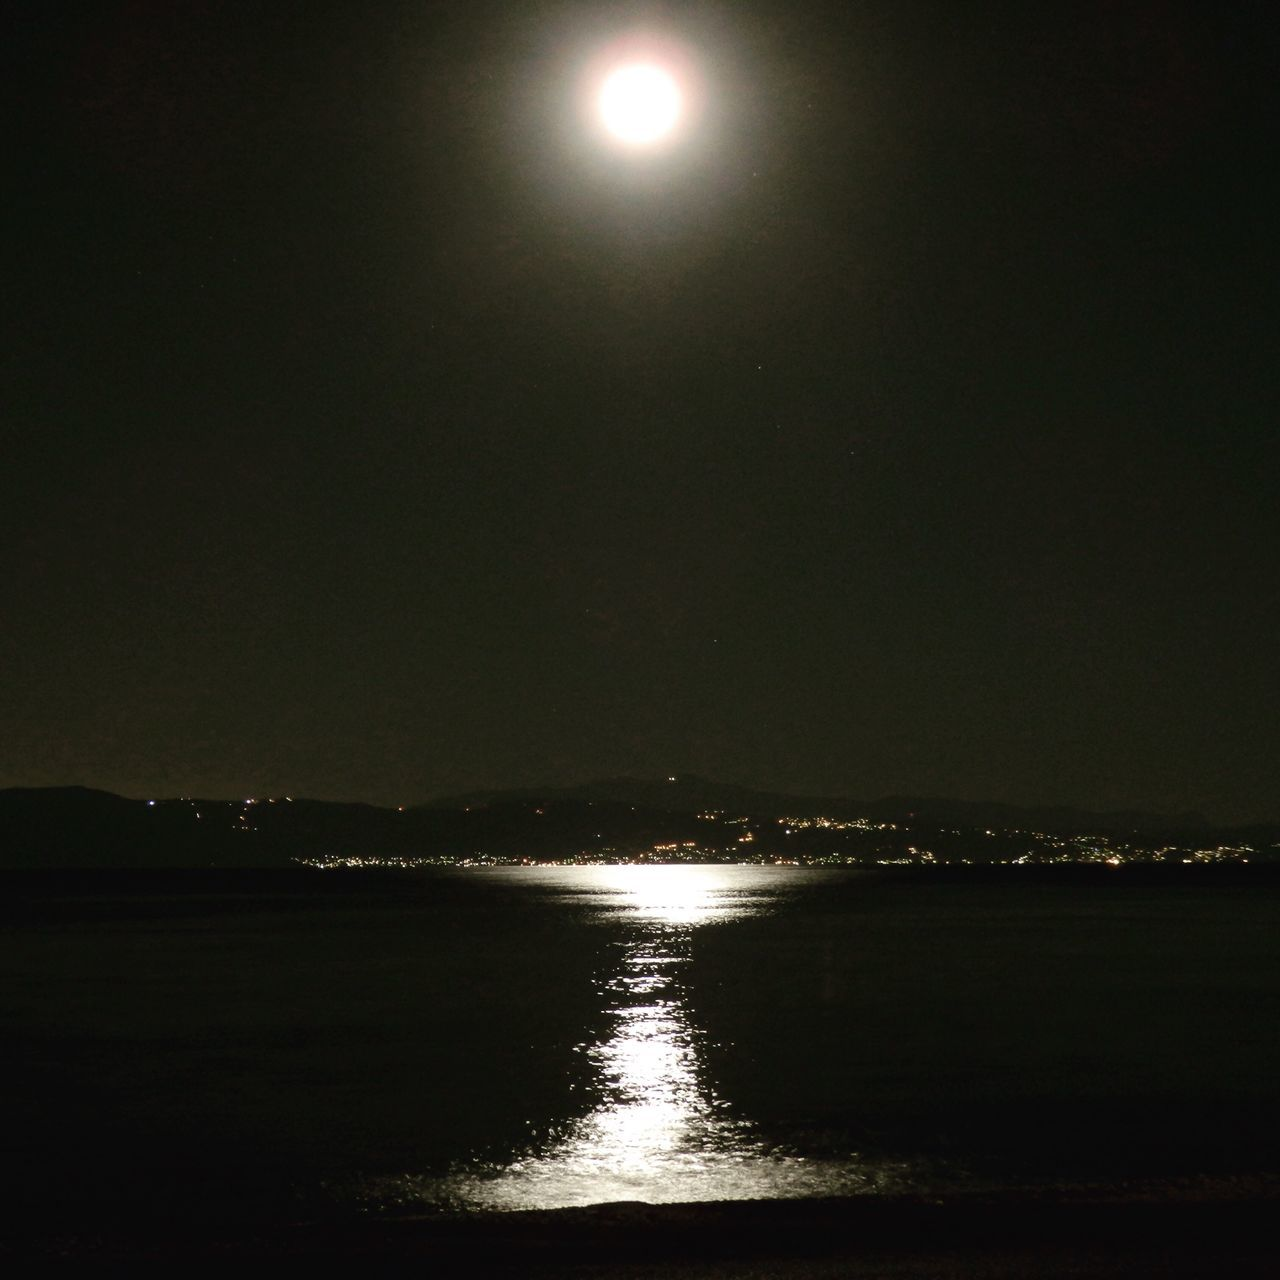 Almost Fullmoon Moonlight Water Water Reflections Reflections August Summer